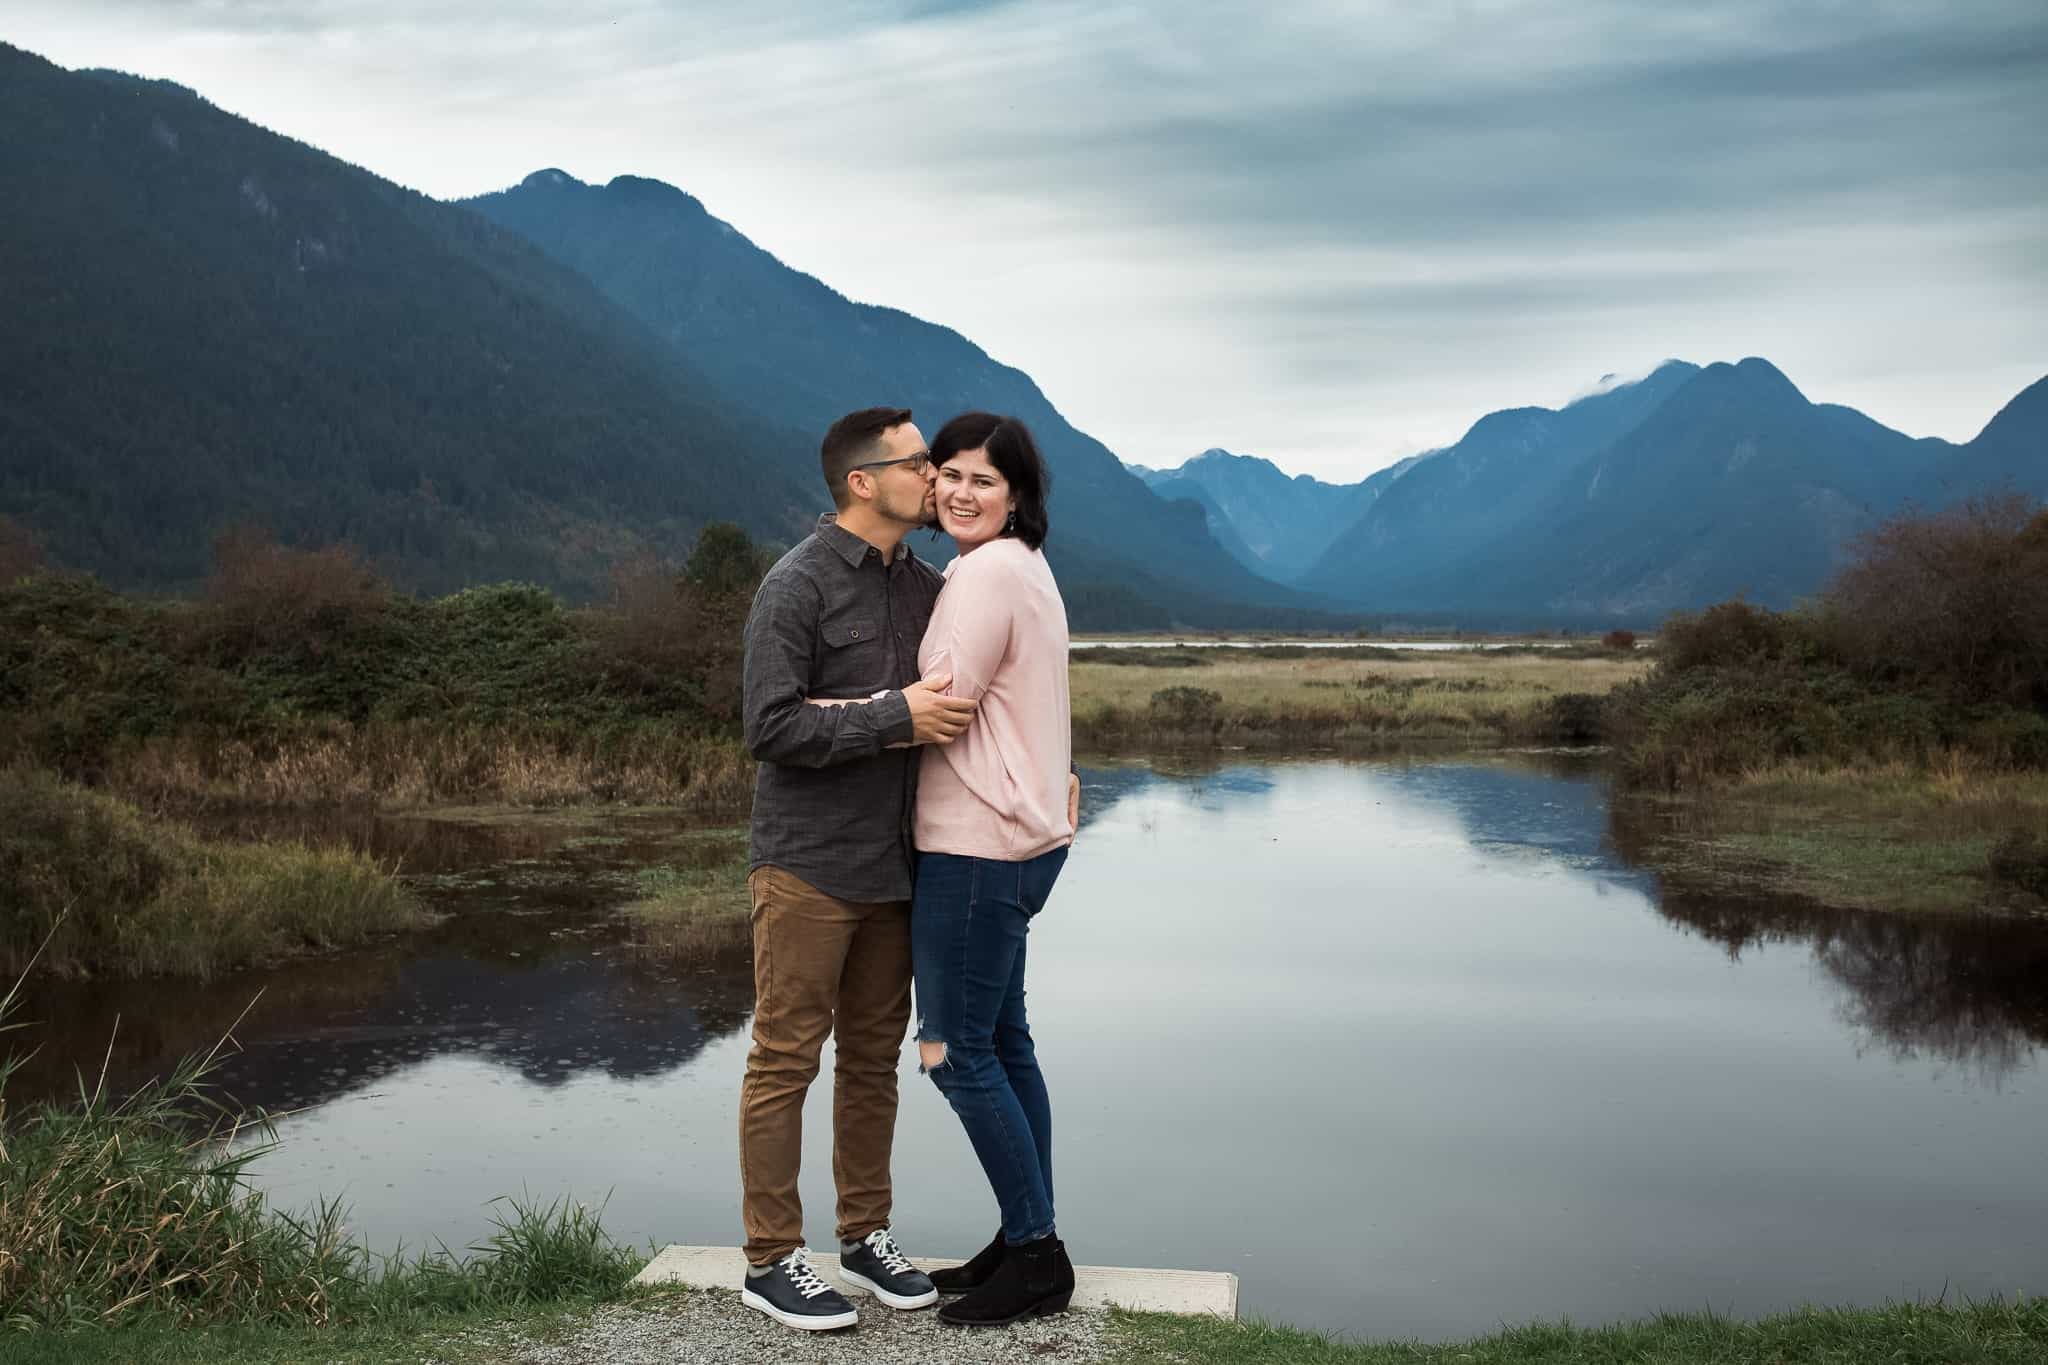 a couple standing on the edge of a lake with mountains in the background kissing